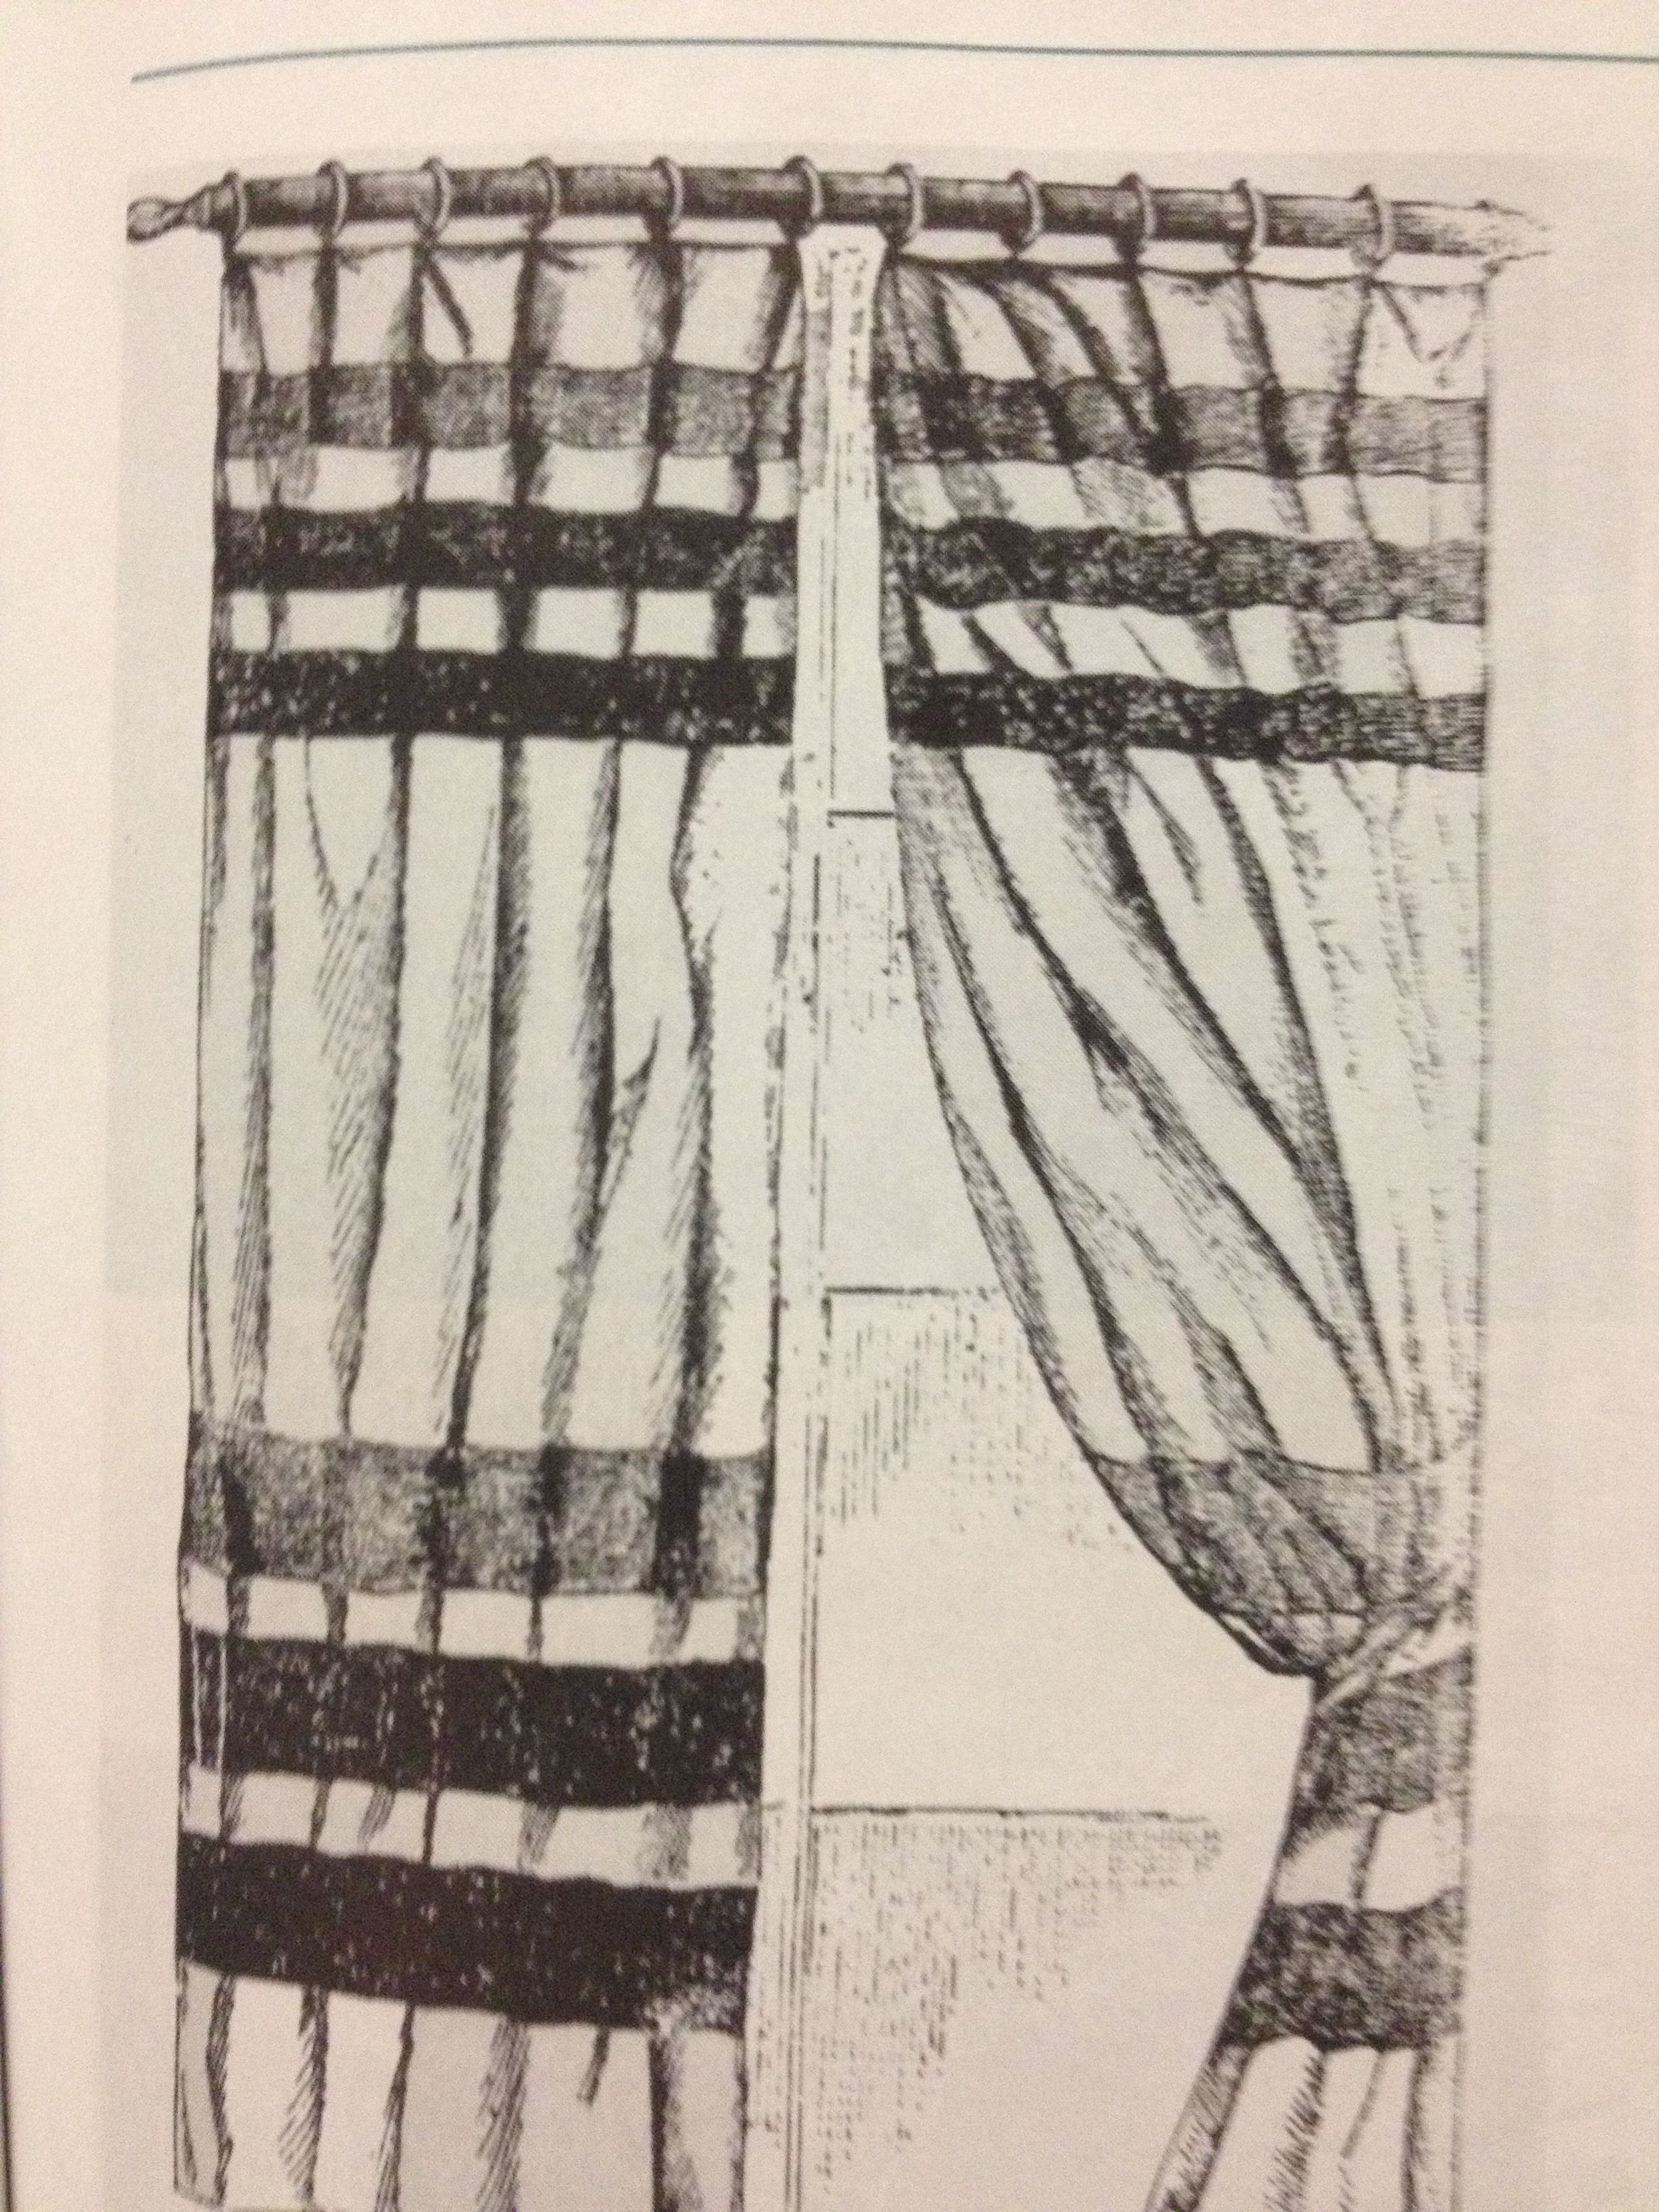 Aesthetic movement curtain sketch. (chapter 16)